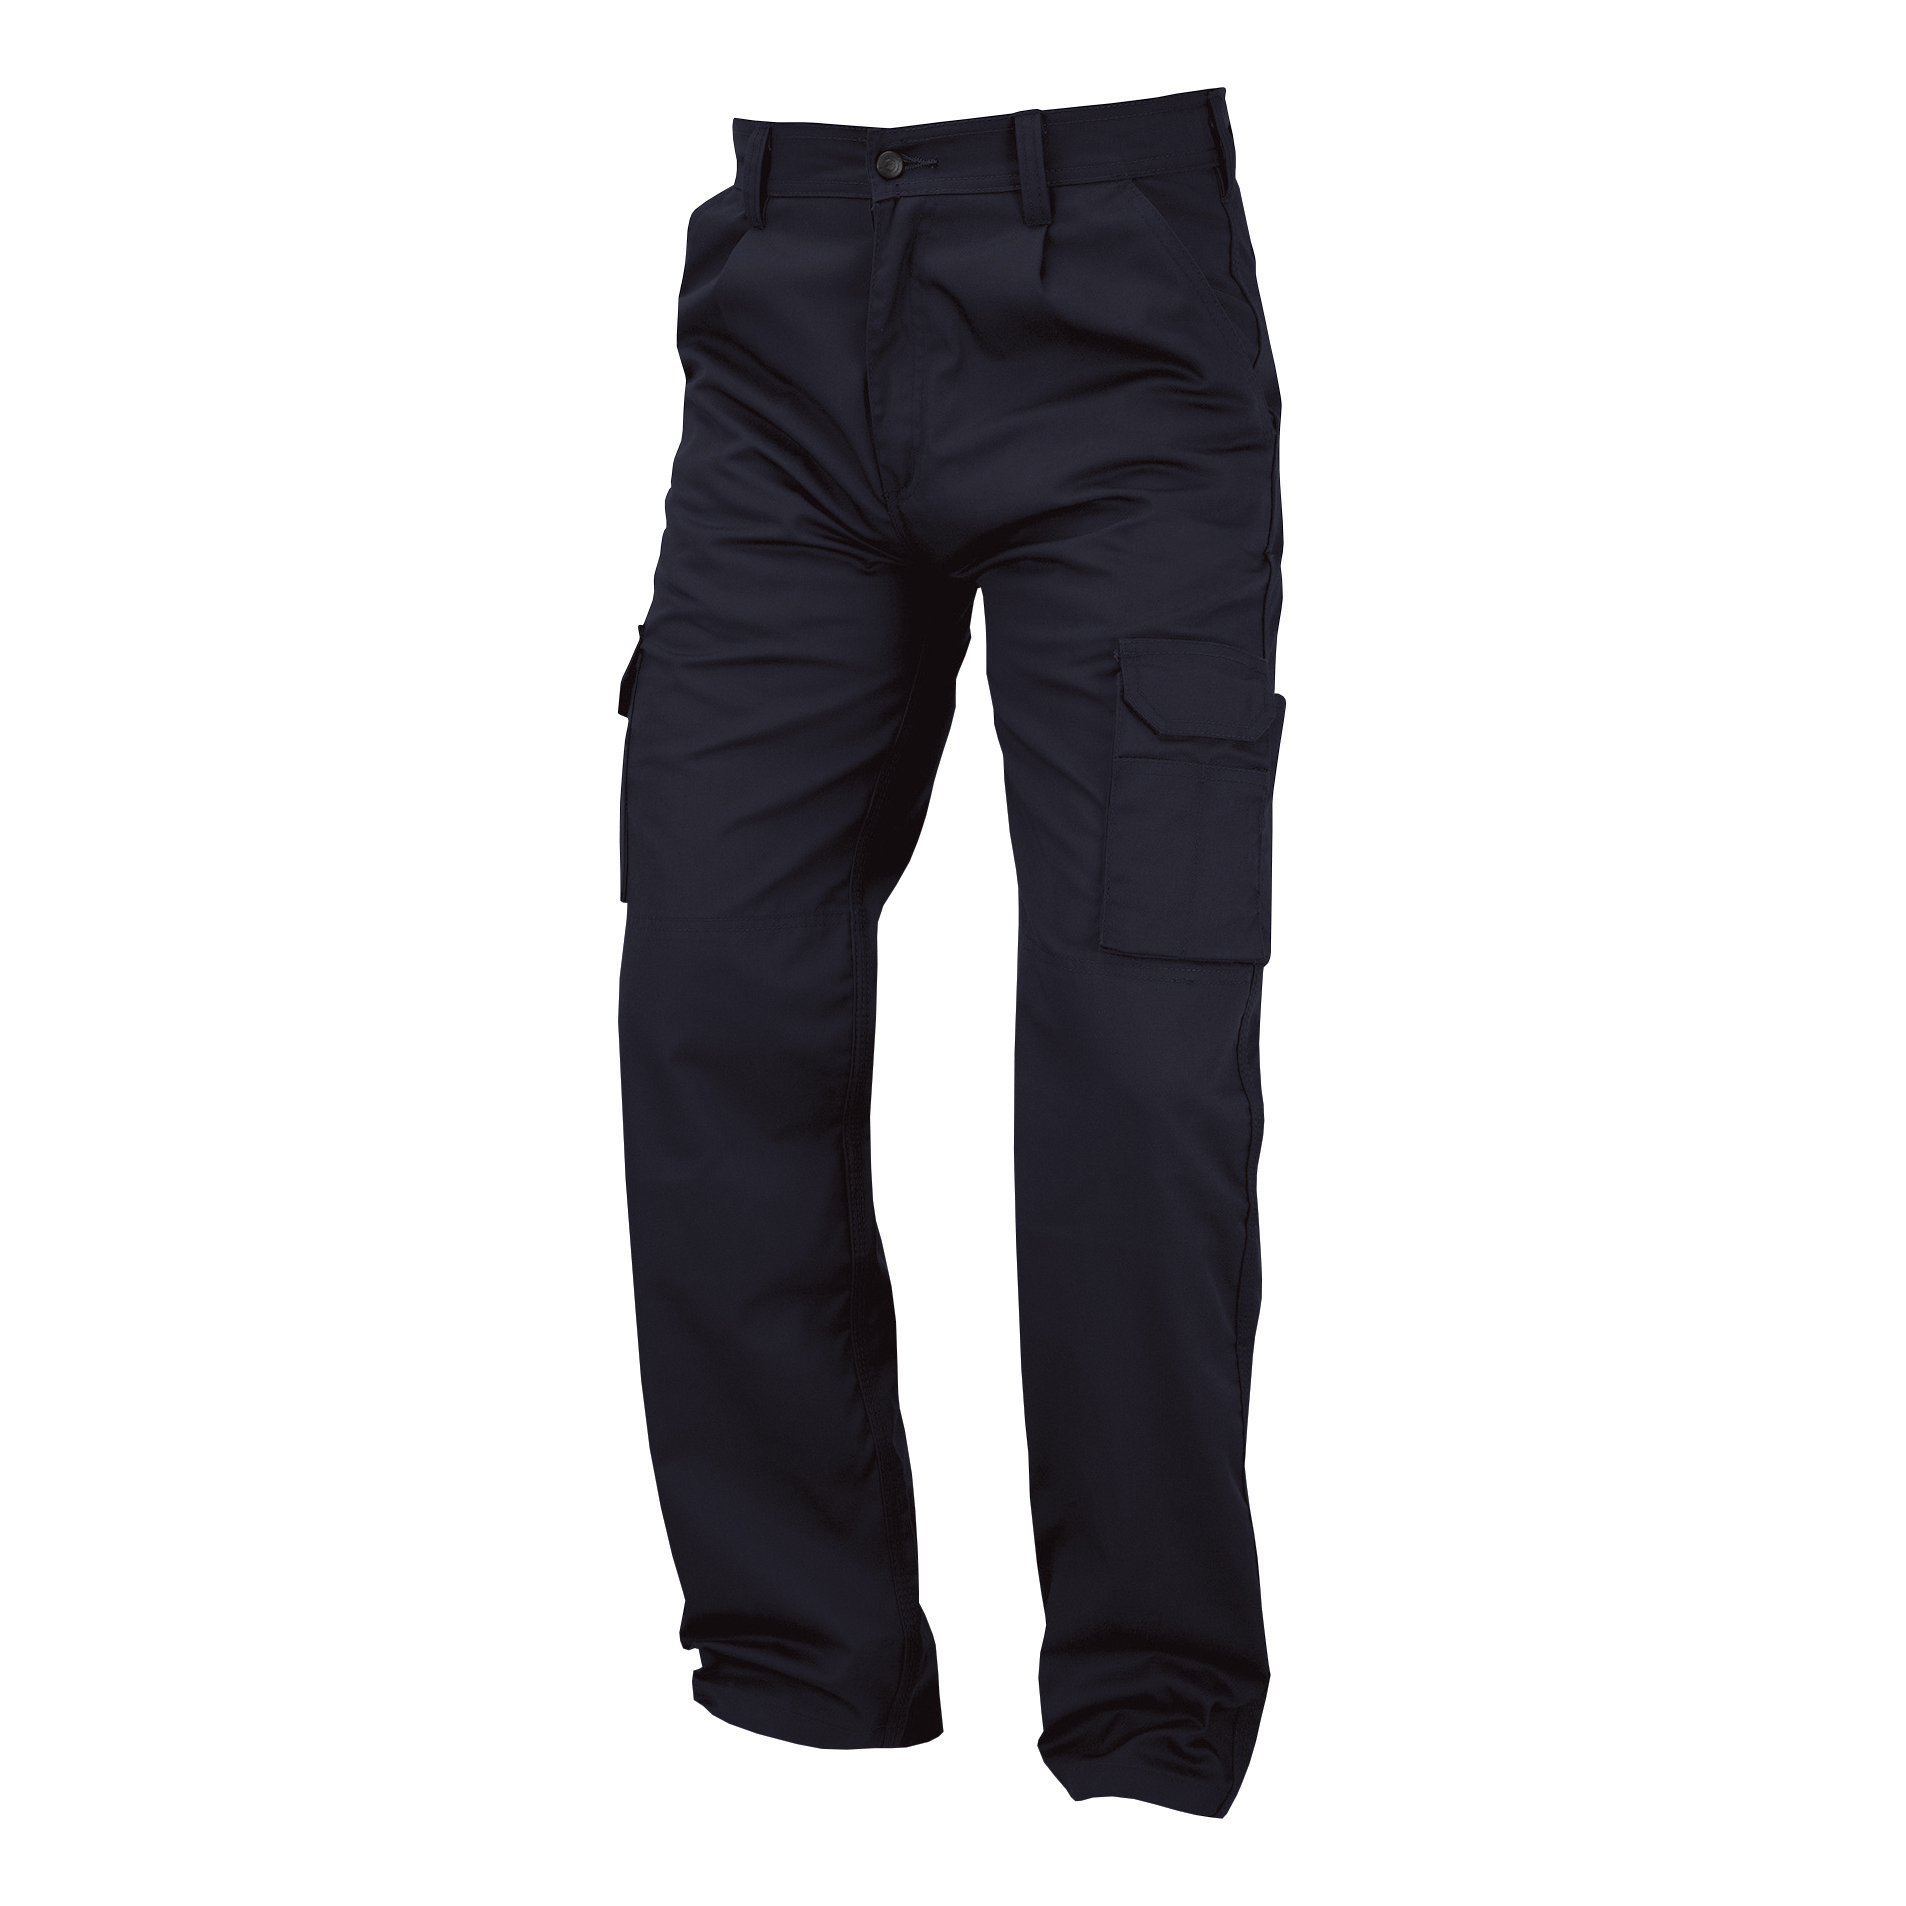 Combat / Cargo Combat Trouser Multi-functional Waist 42in Leg 29in Navy Ref PCTHWN42S *Approx 3 Day Leadtime*